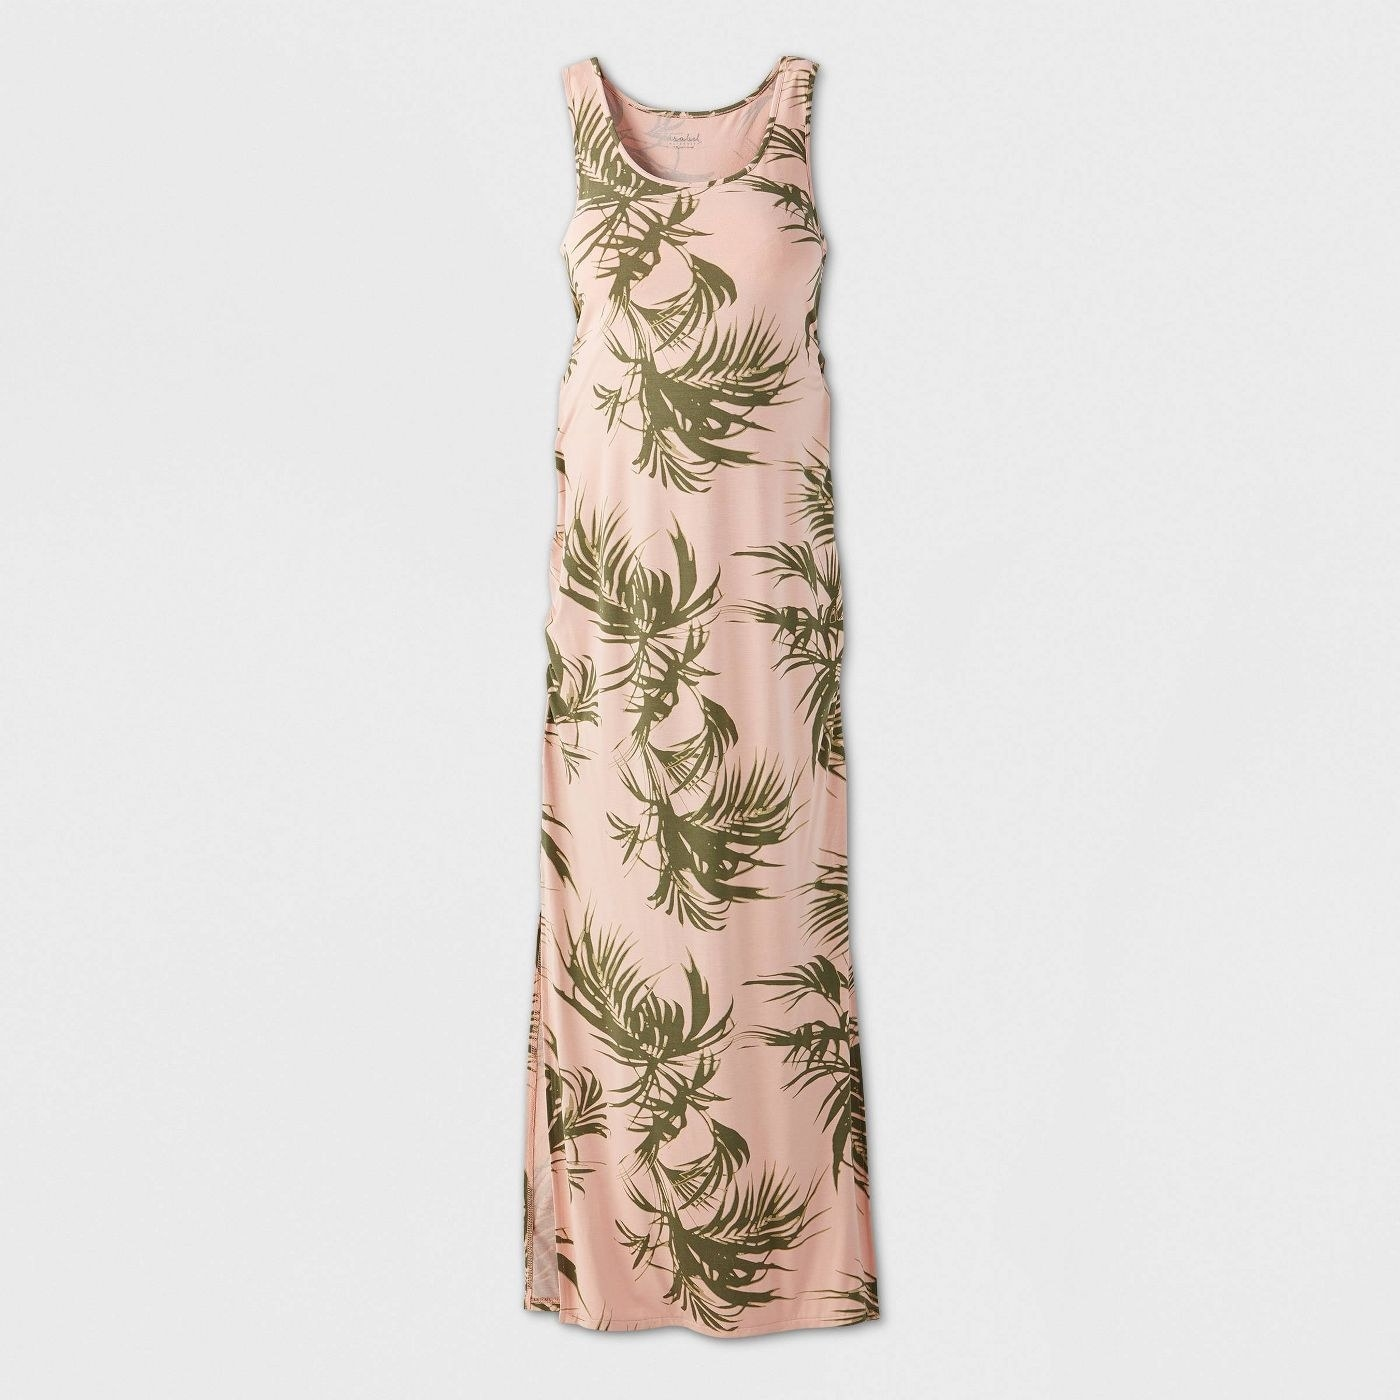 A sleeveless pink dress with green palm tree leaf patterns